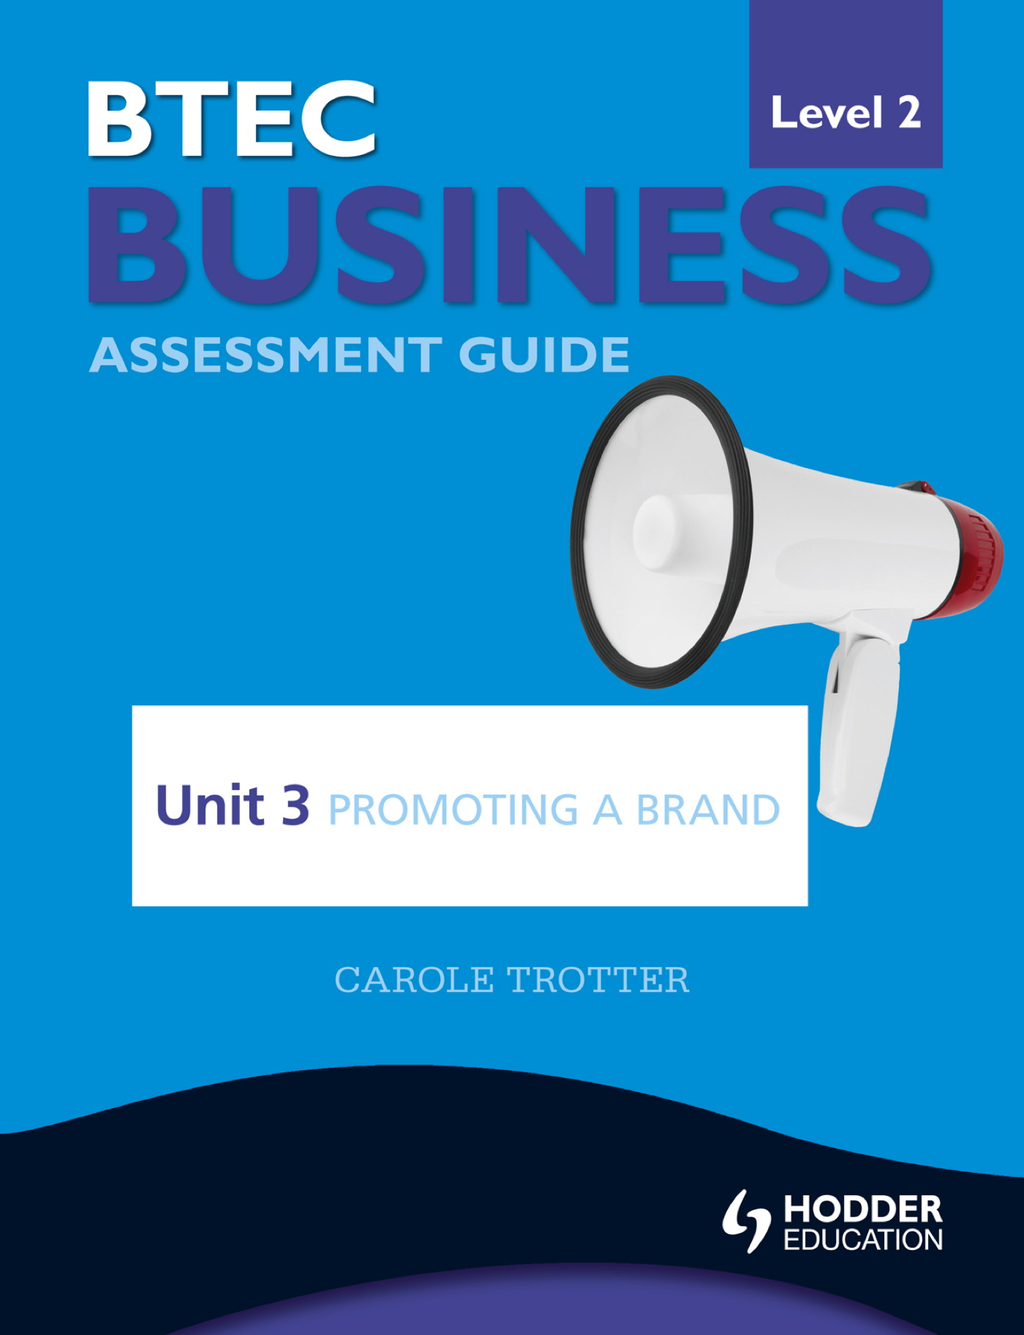 BTEC Business Level 2 Assessment Guide: Unit 3 Promoting a Brand